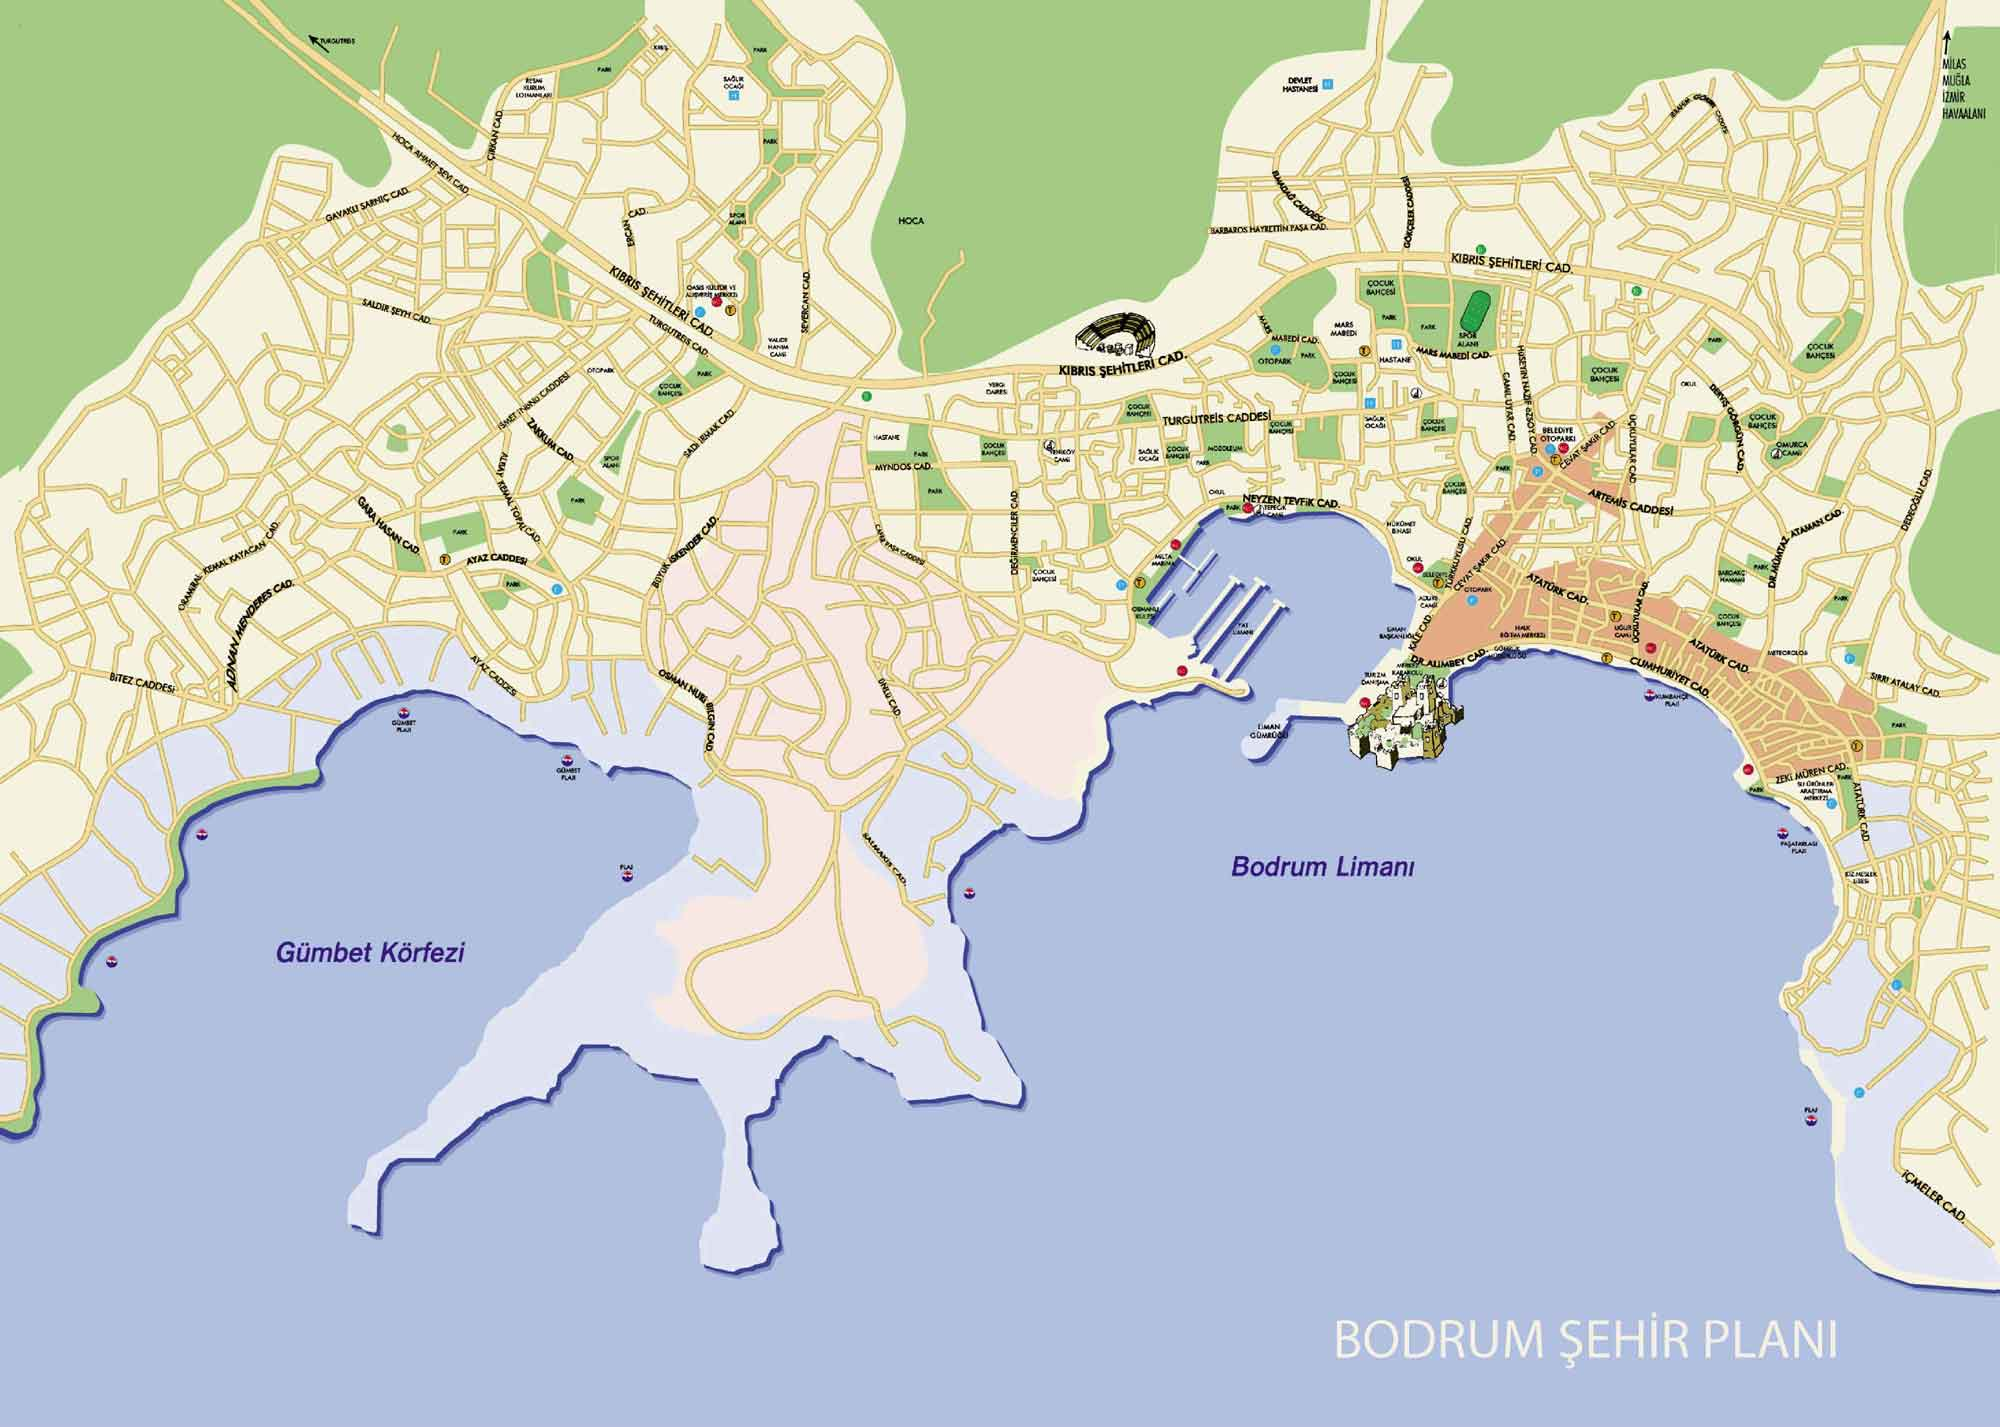 Large bodrum maps for free download and print high resolution and large map of bodrum 1 gumiabroncs Image collections